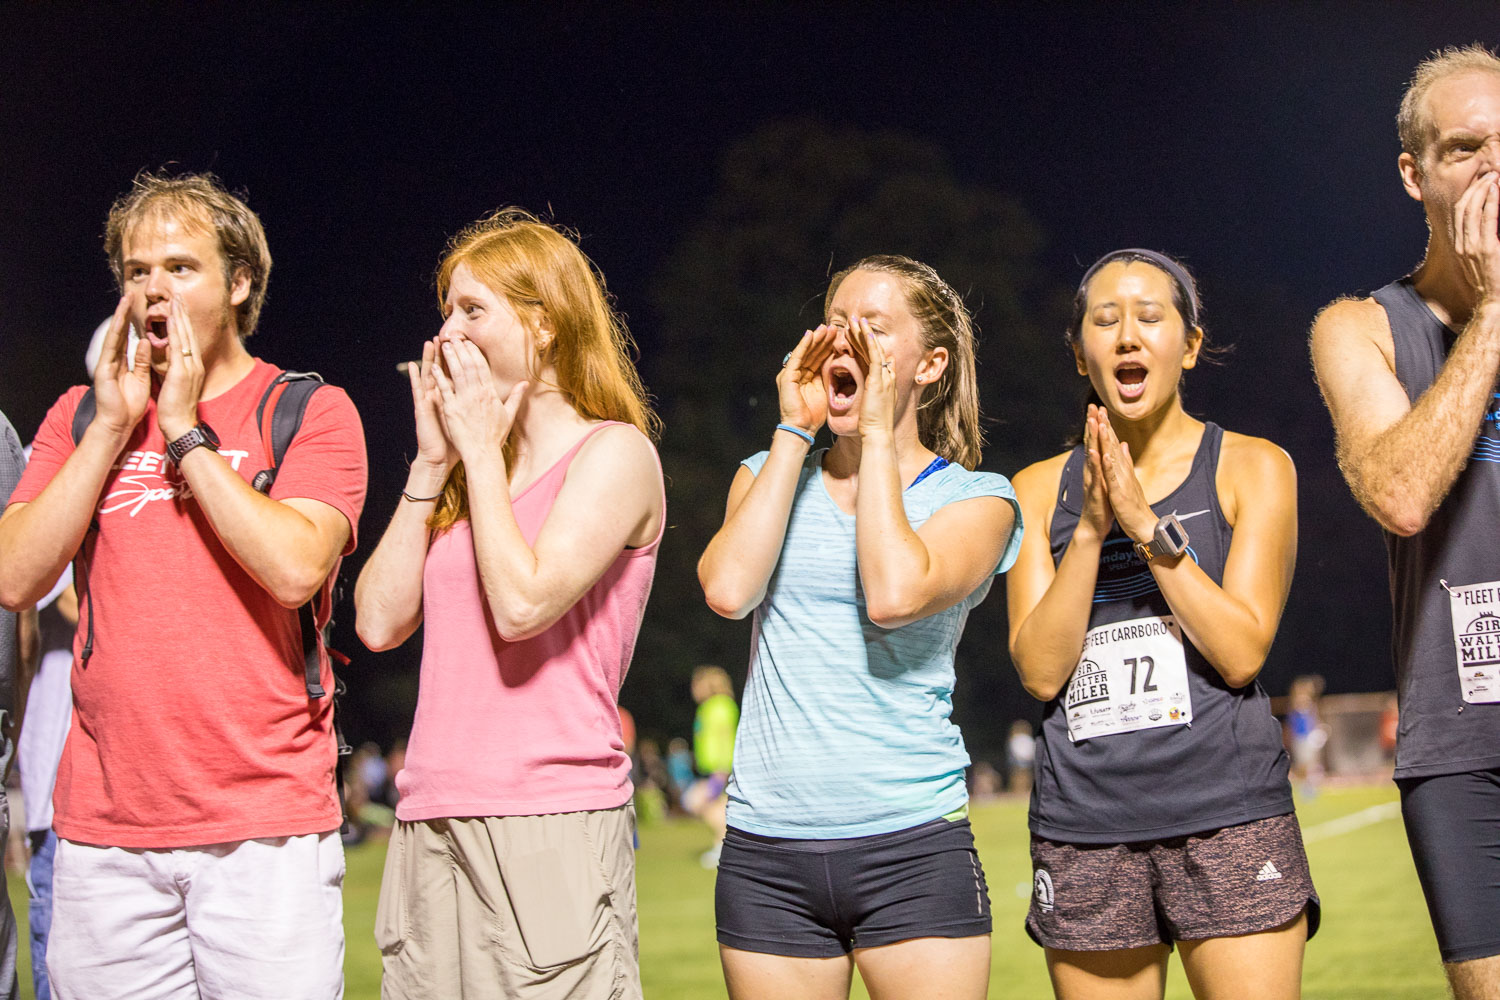 Cheering for the elites